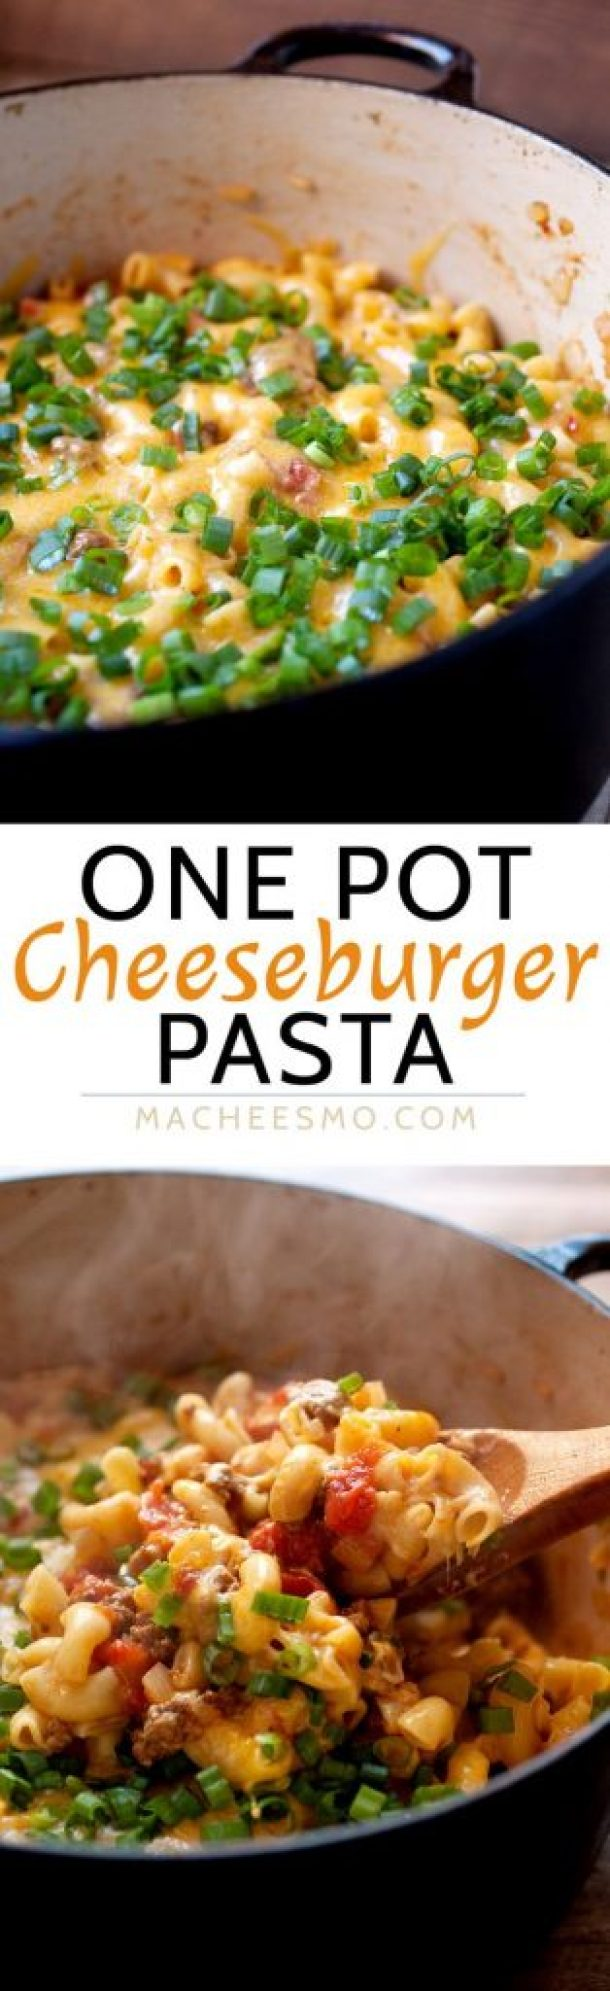 One Pot Cheeseburger Pasta {with a cheese lid!} Recipe | Macheesmo